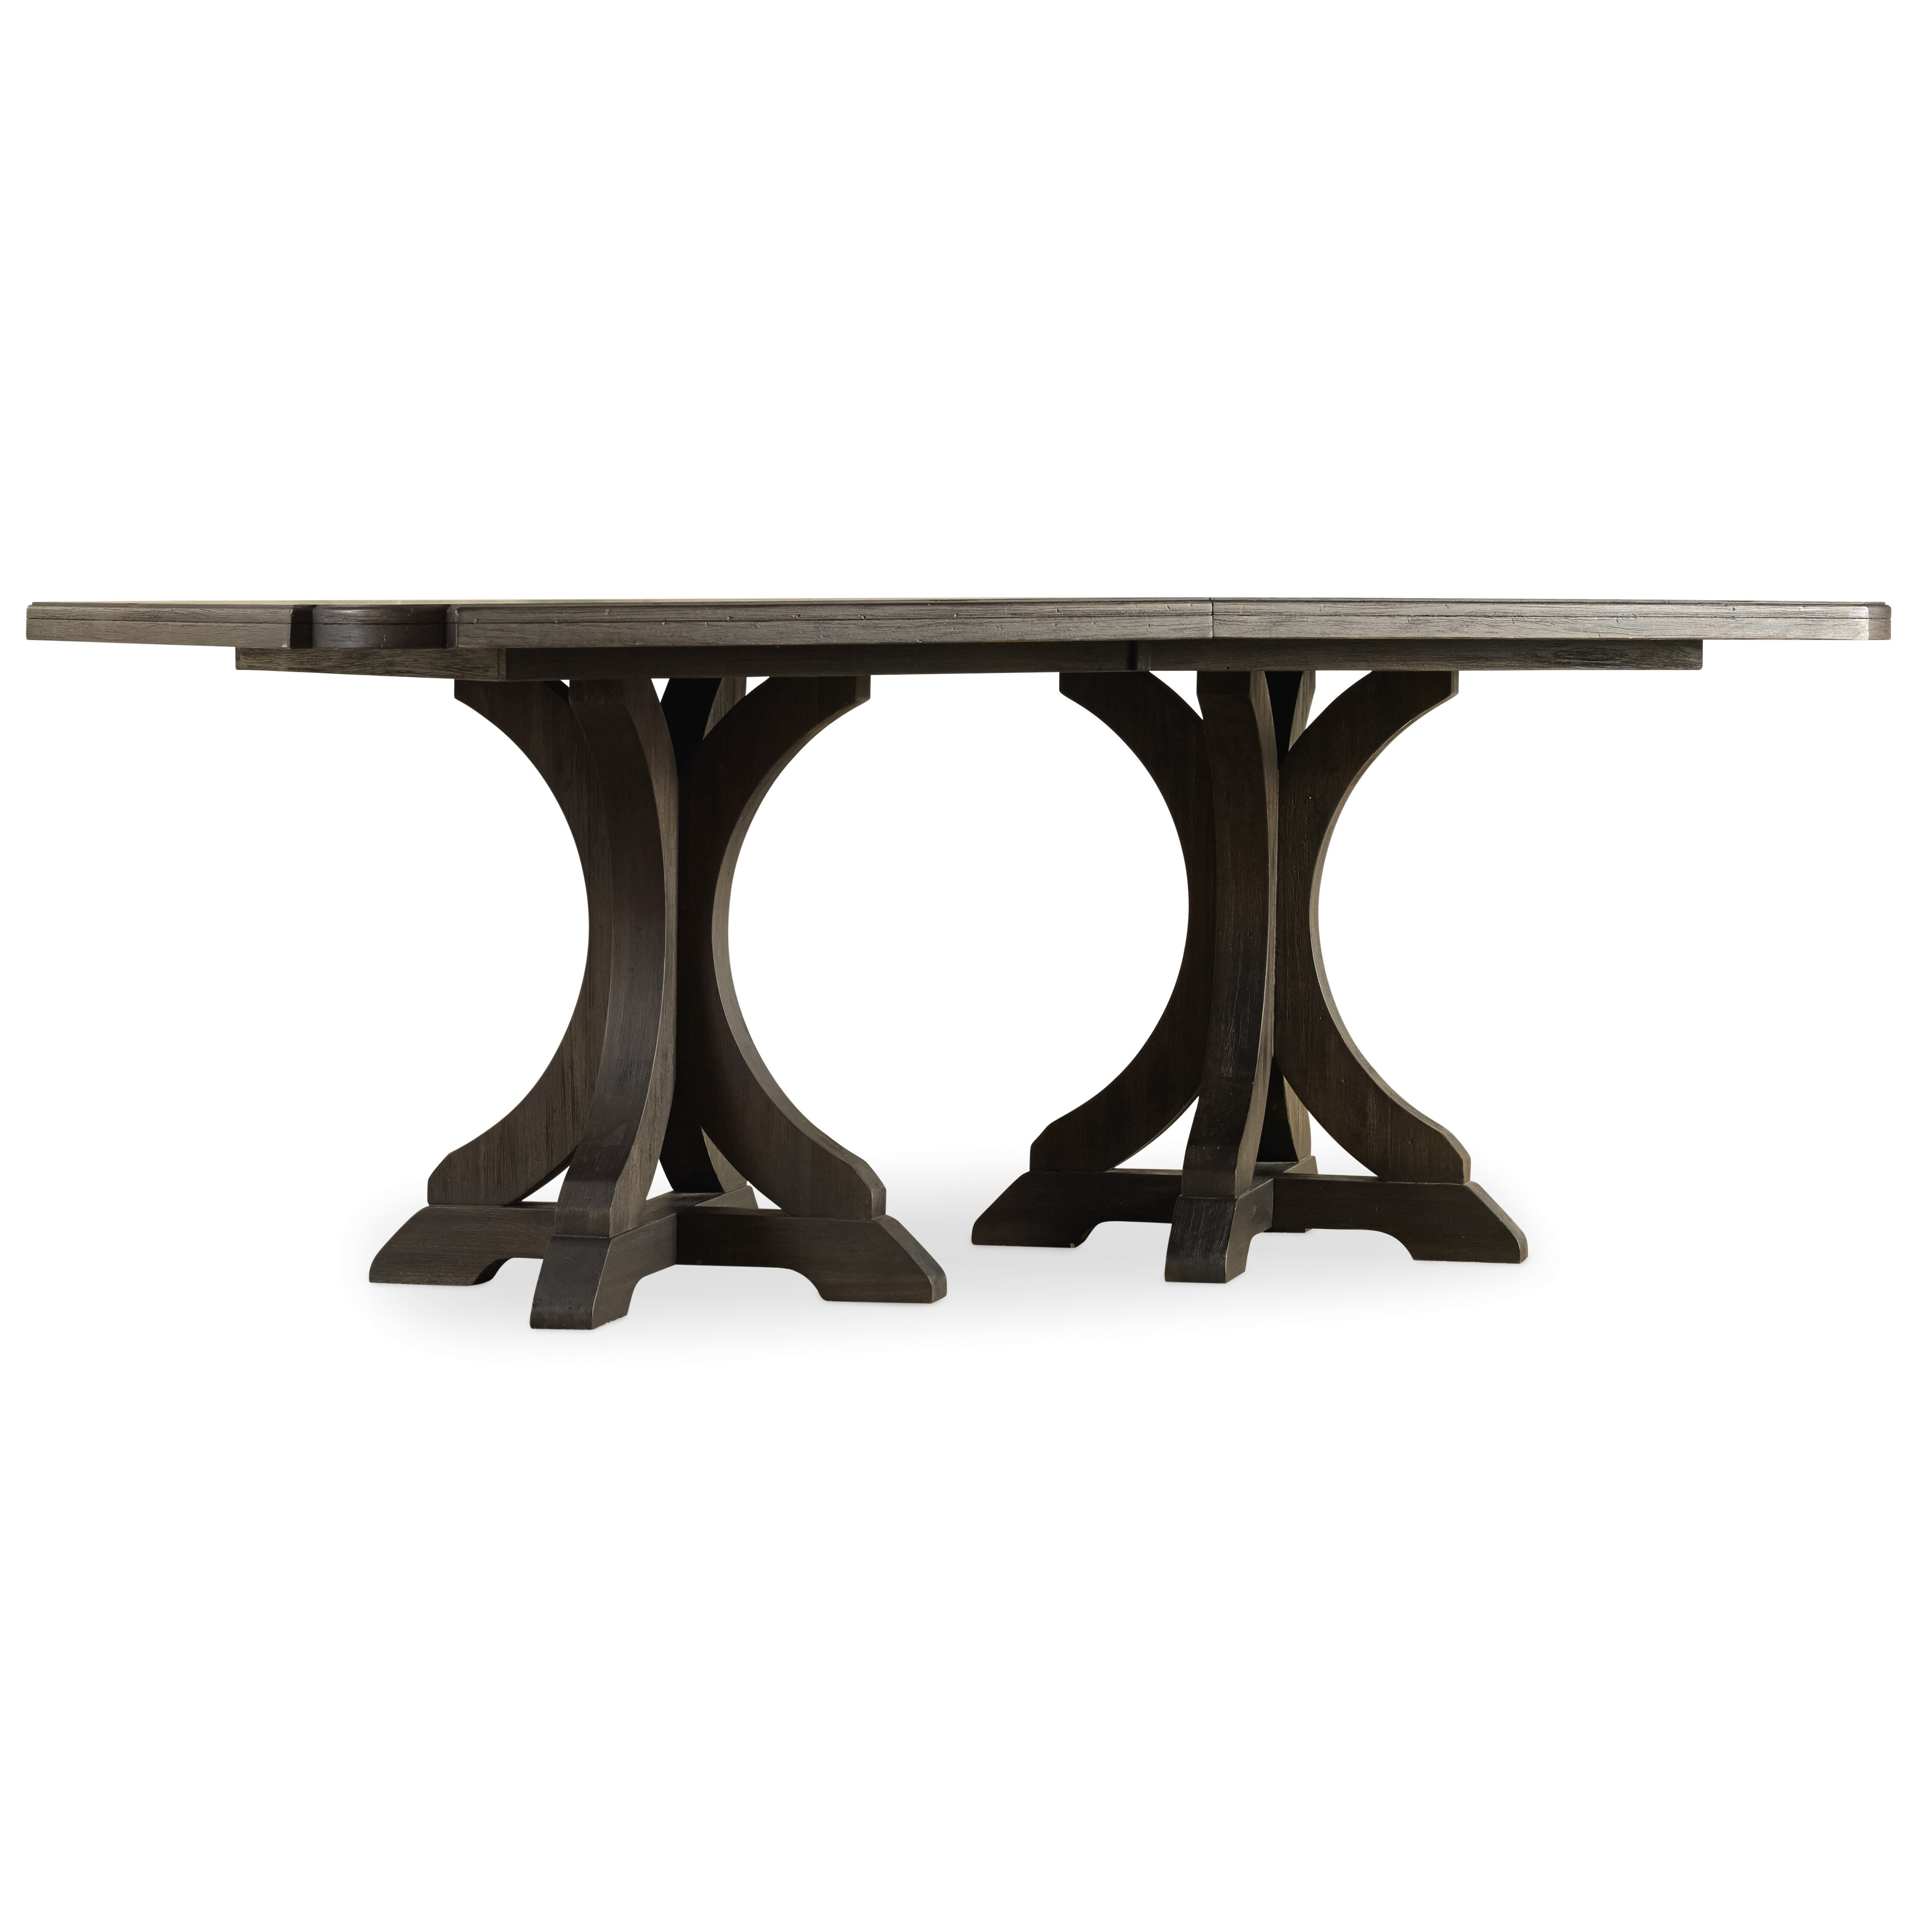 Hooker Furniture Corsica Extendable Dining Table amp Reviews  :  from www.wayfair.com size 4513 x 4513 jpeg 791kB